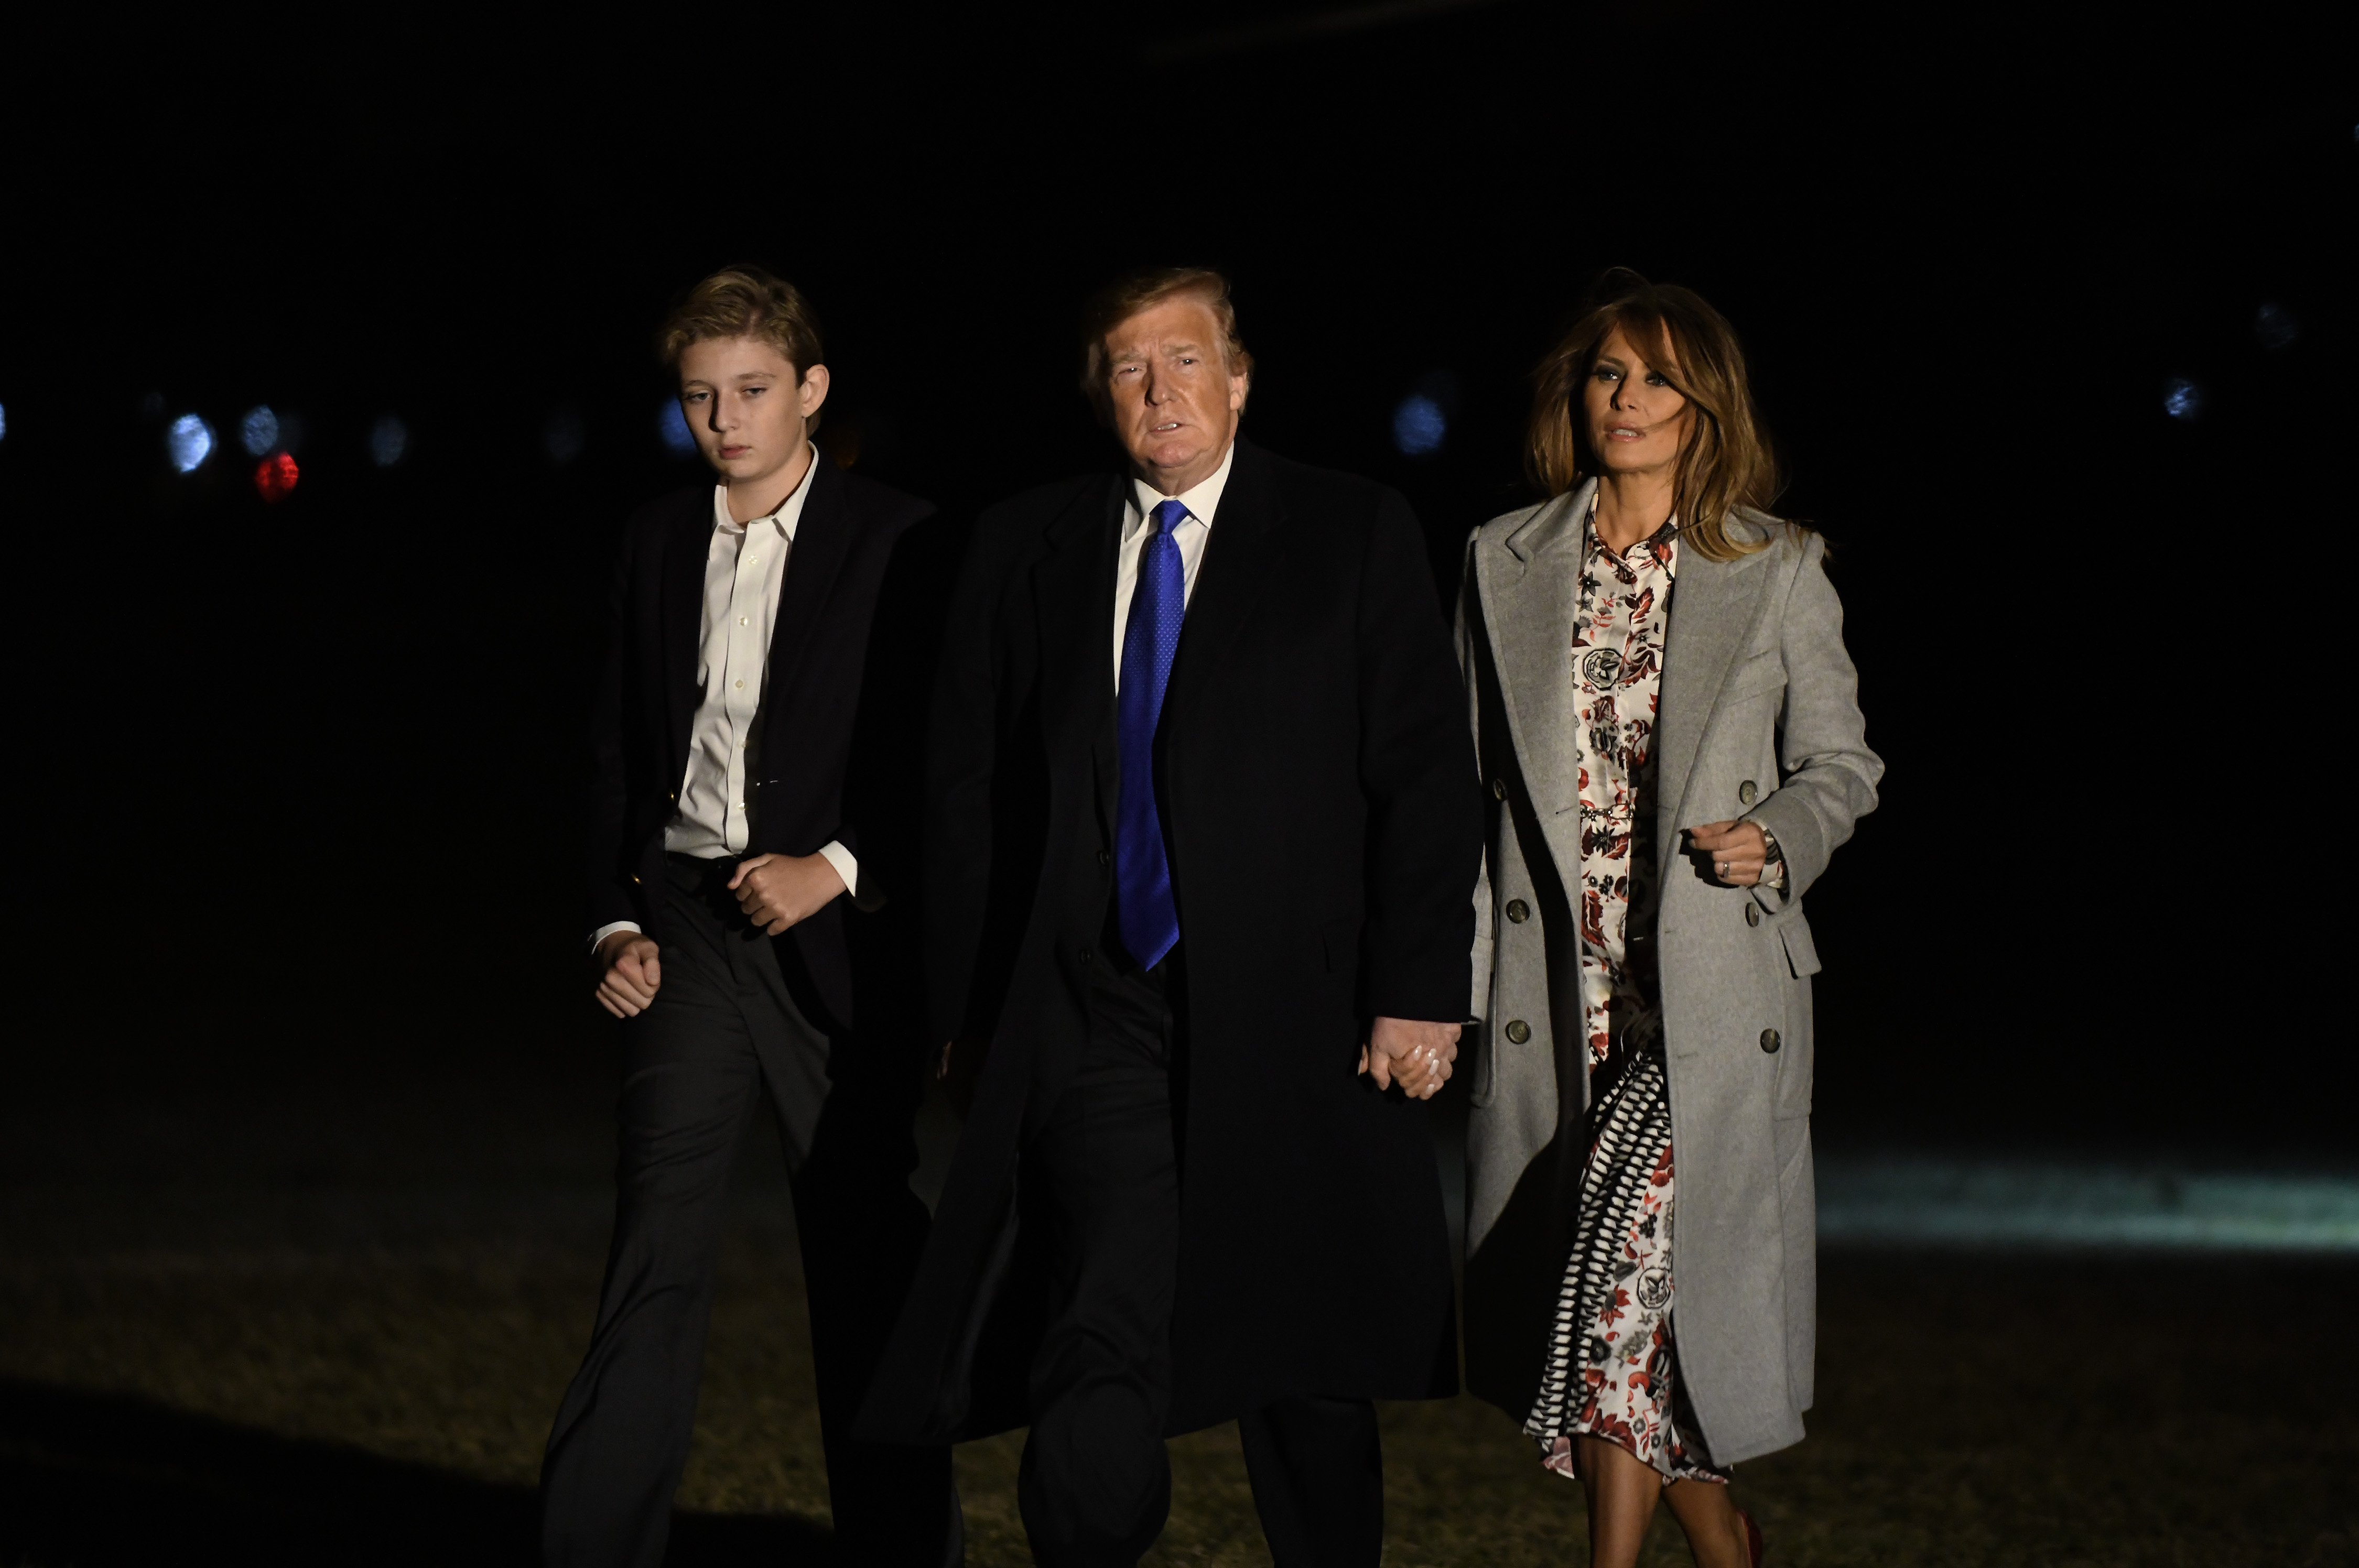 President Donald Trump and First Lady Melania with their son Baron on the grounds of the White House | Photo: Getty Images